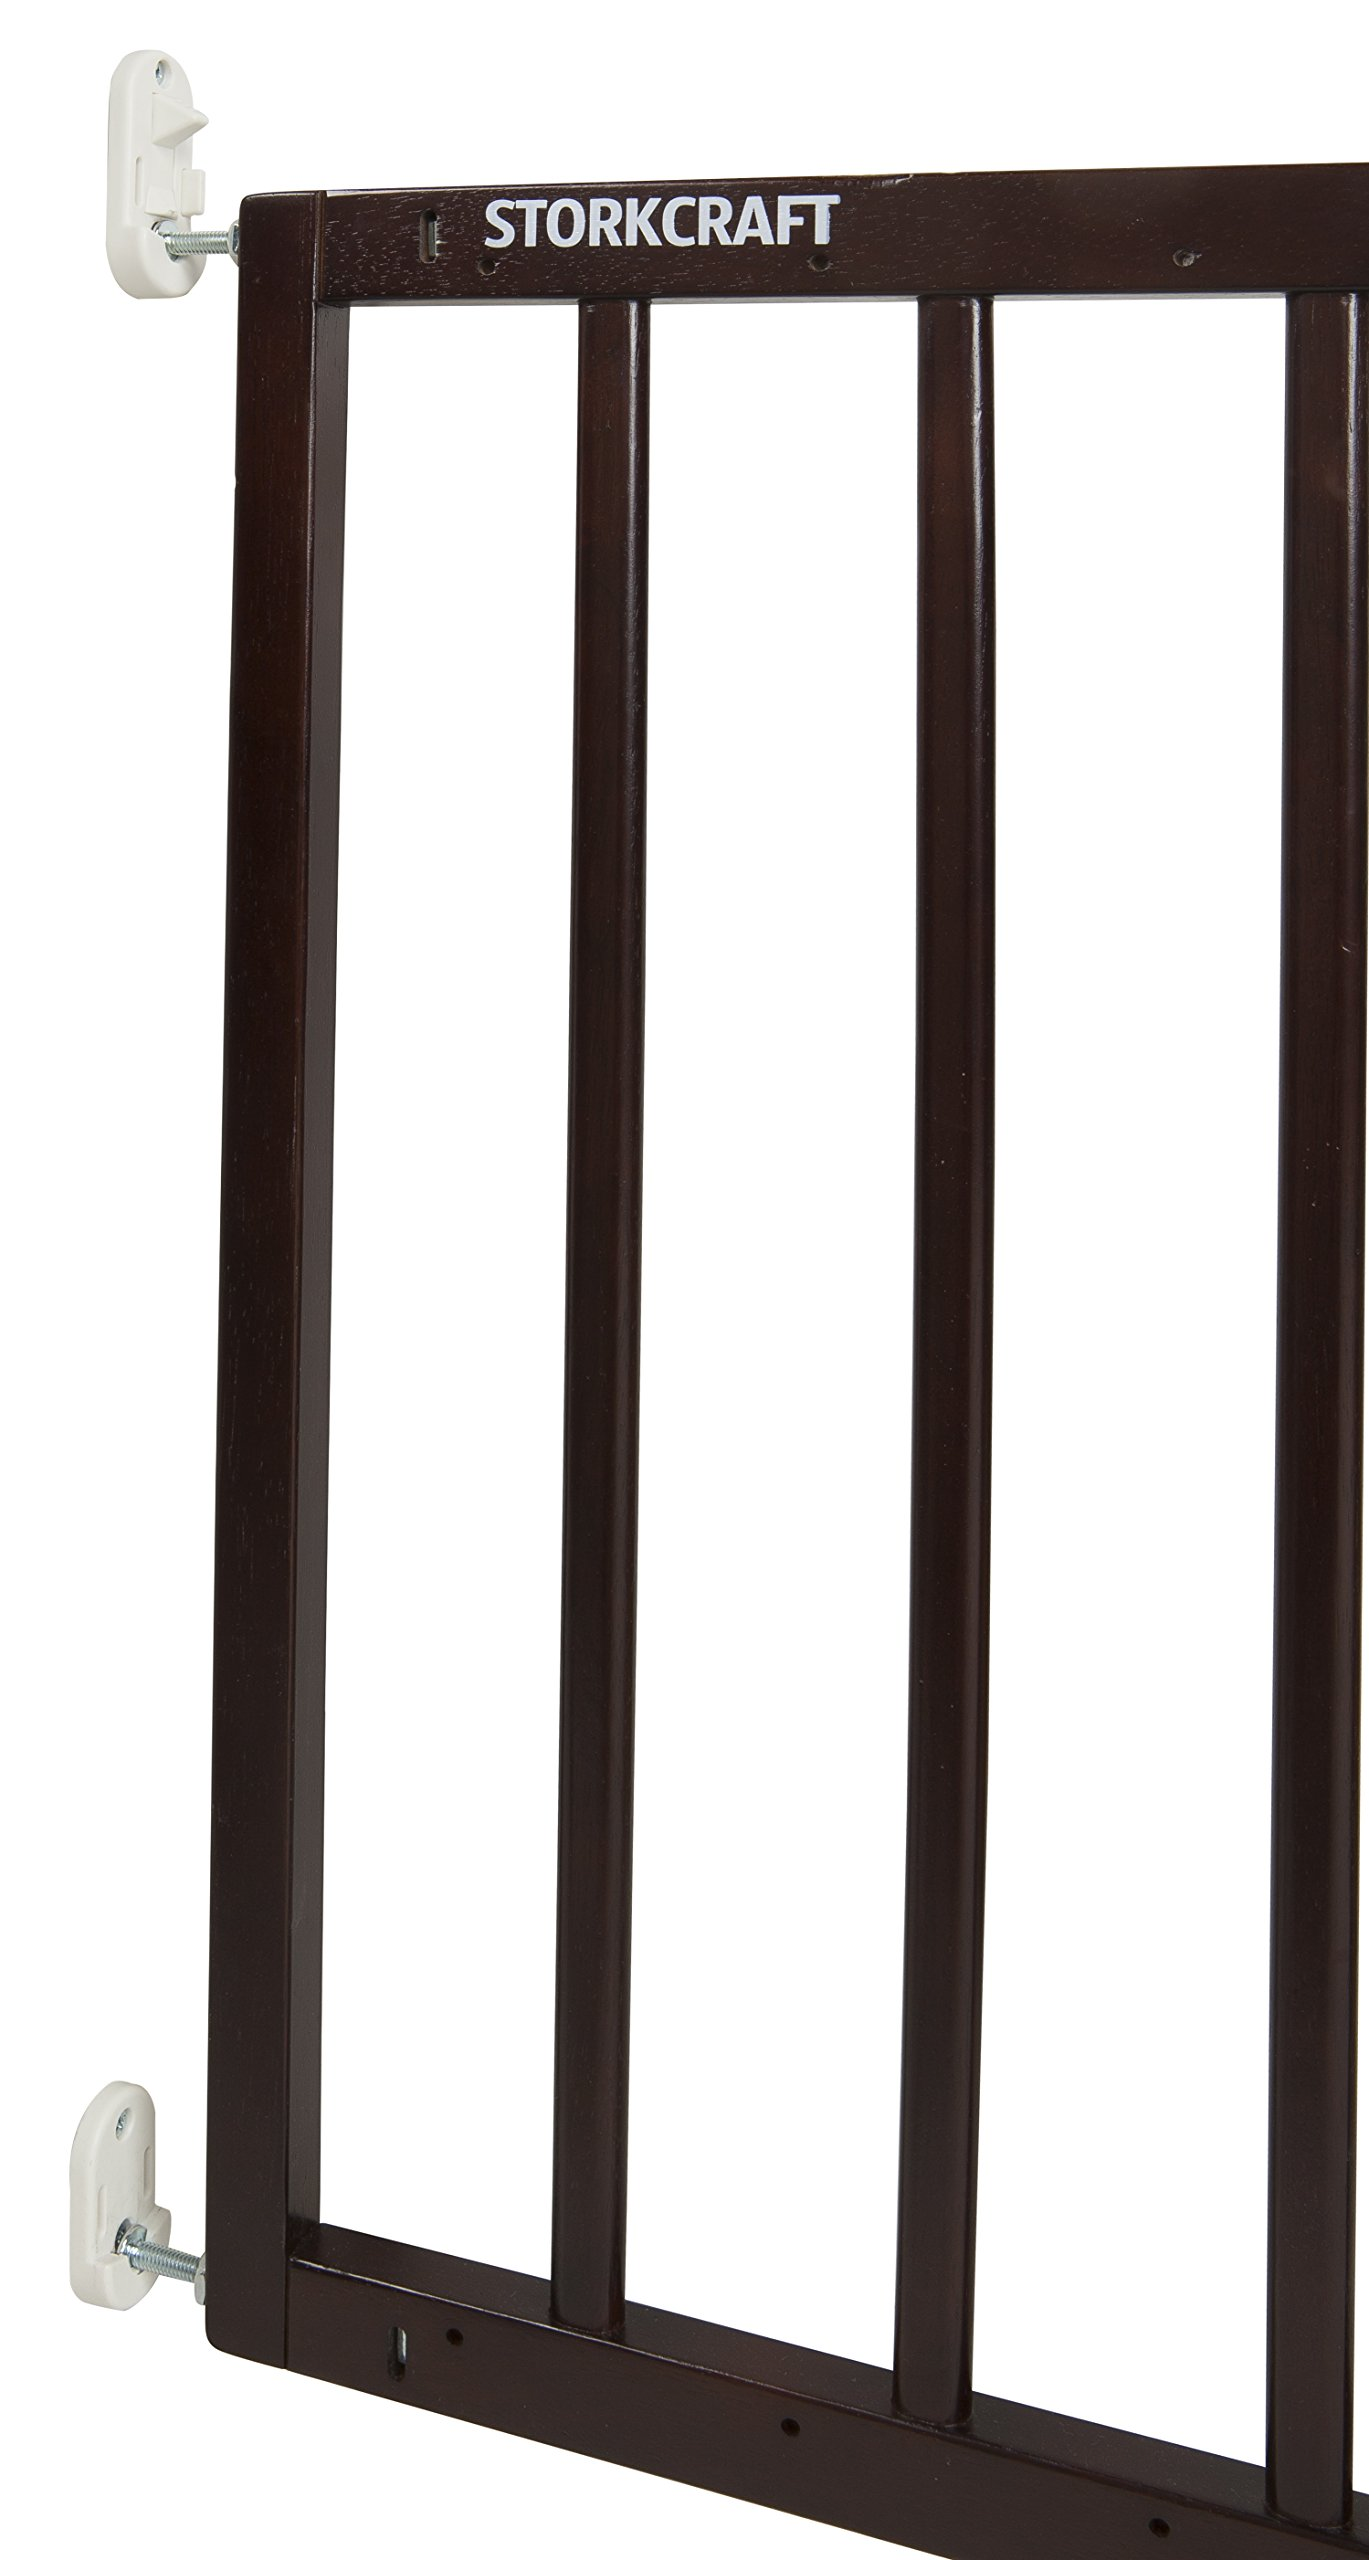 Storkcraft Easy Walk-Thru Wooden Safety Gate, Espresso Adjustable Baby Safety Gate For Doorways and Stairs, Great for Children and Pets by Stork Craft (Image #9)